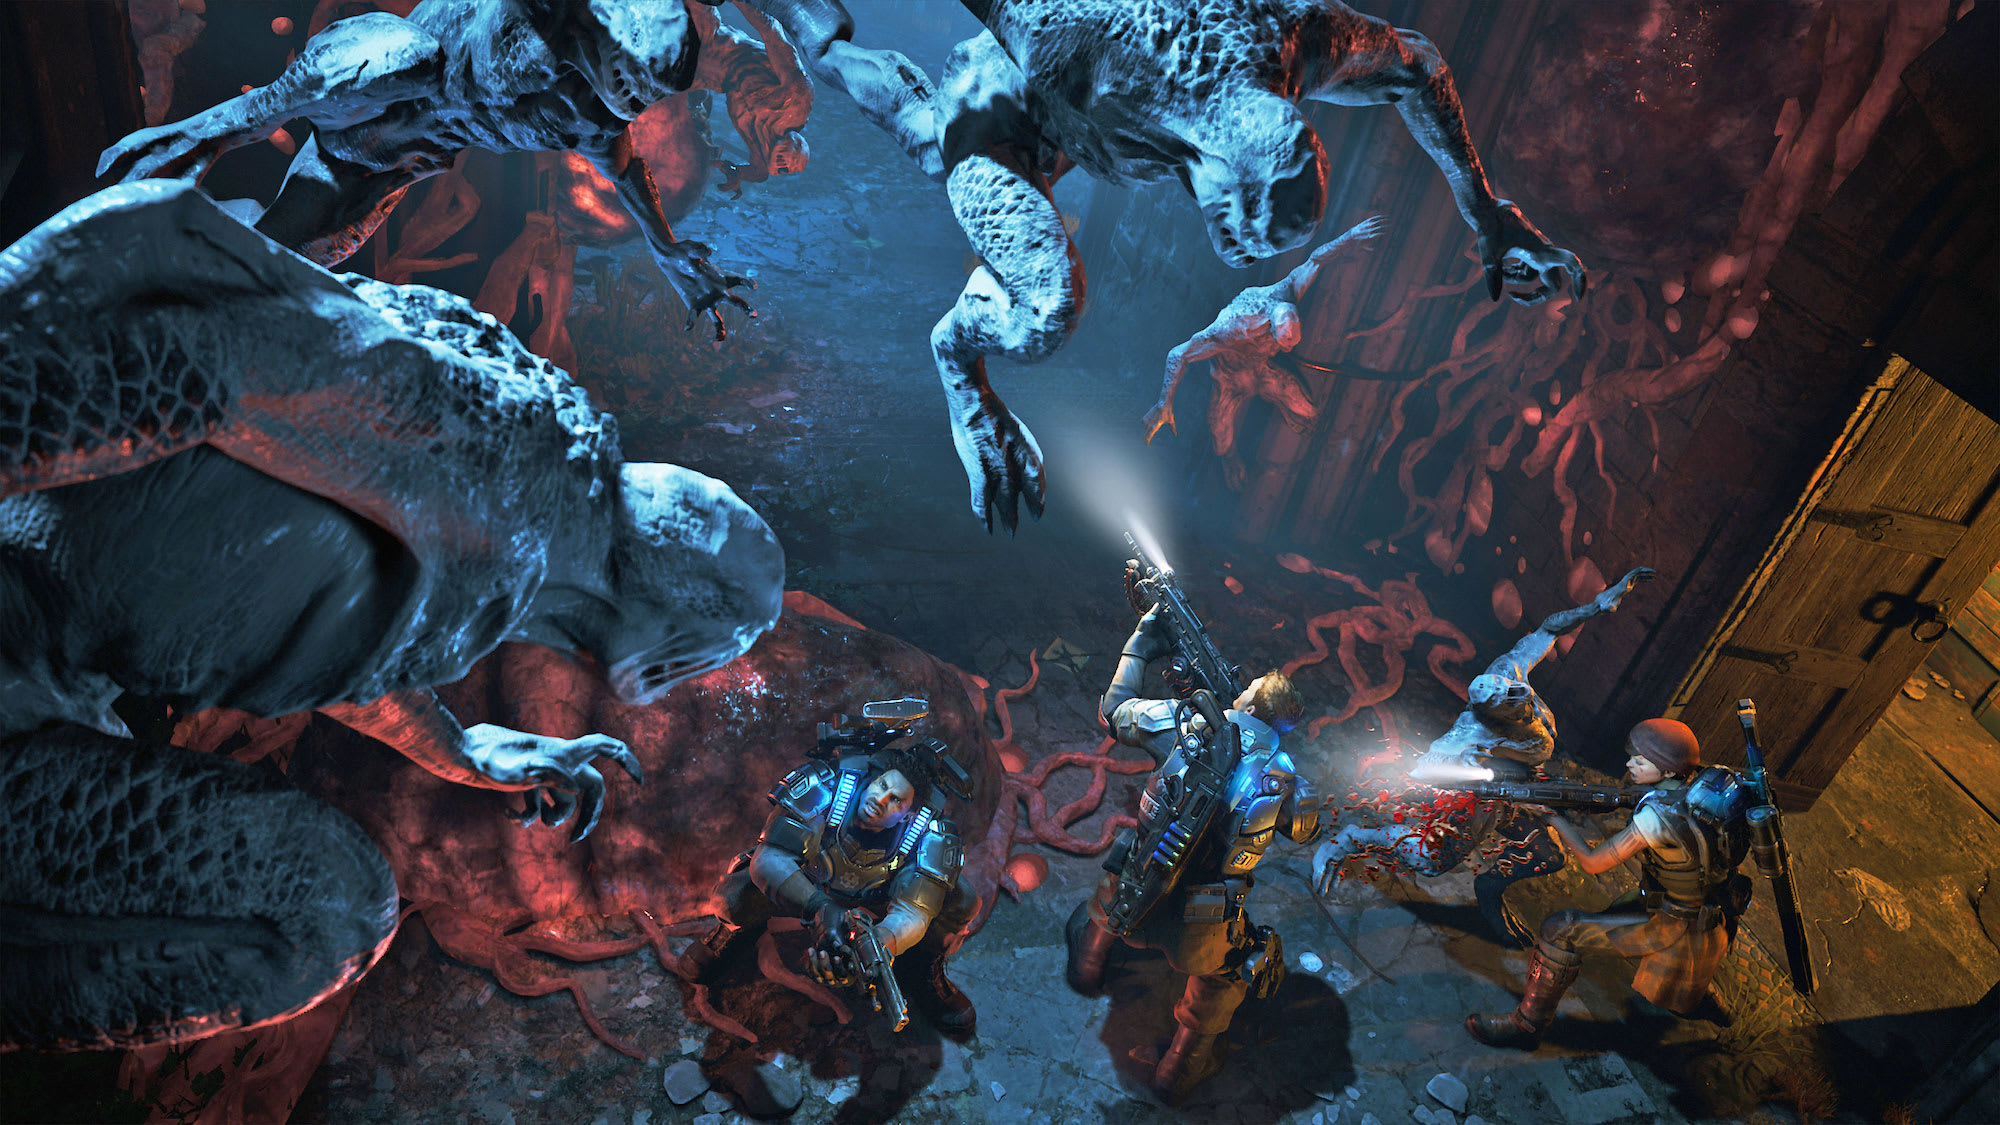 Gears of War 4' writers are striving for a deeper story